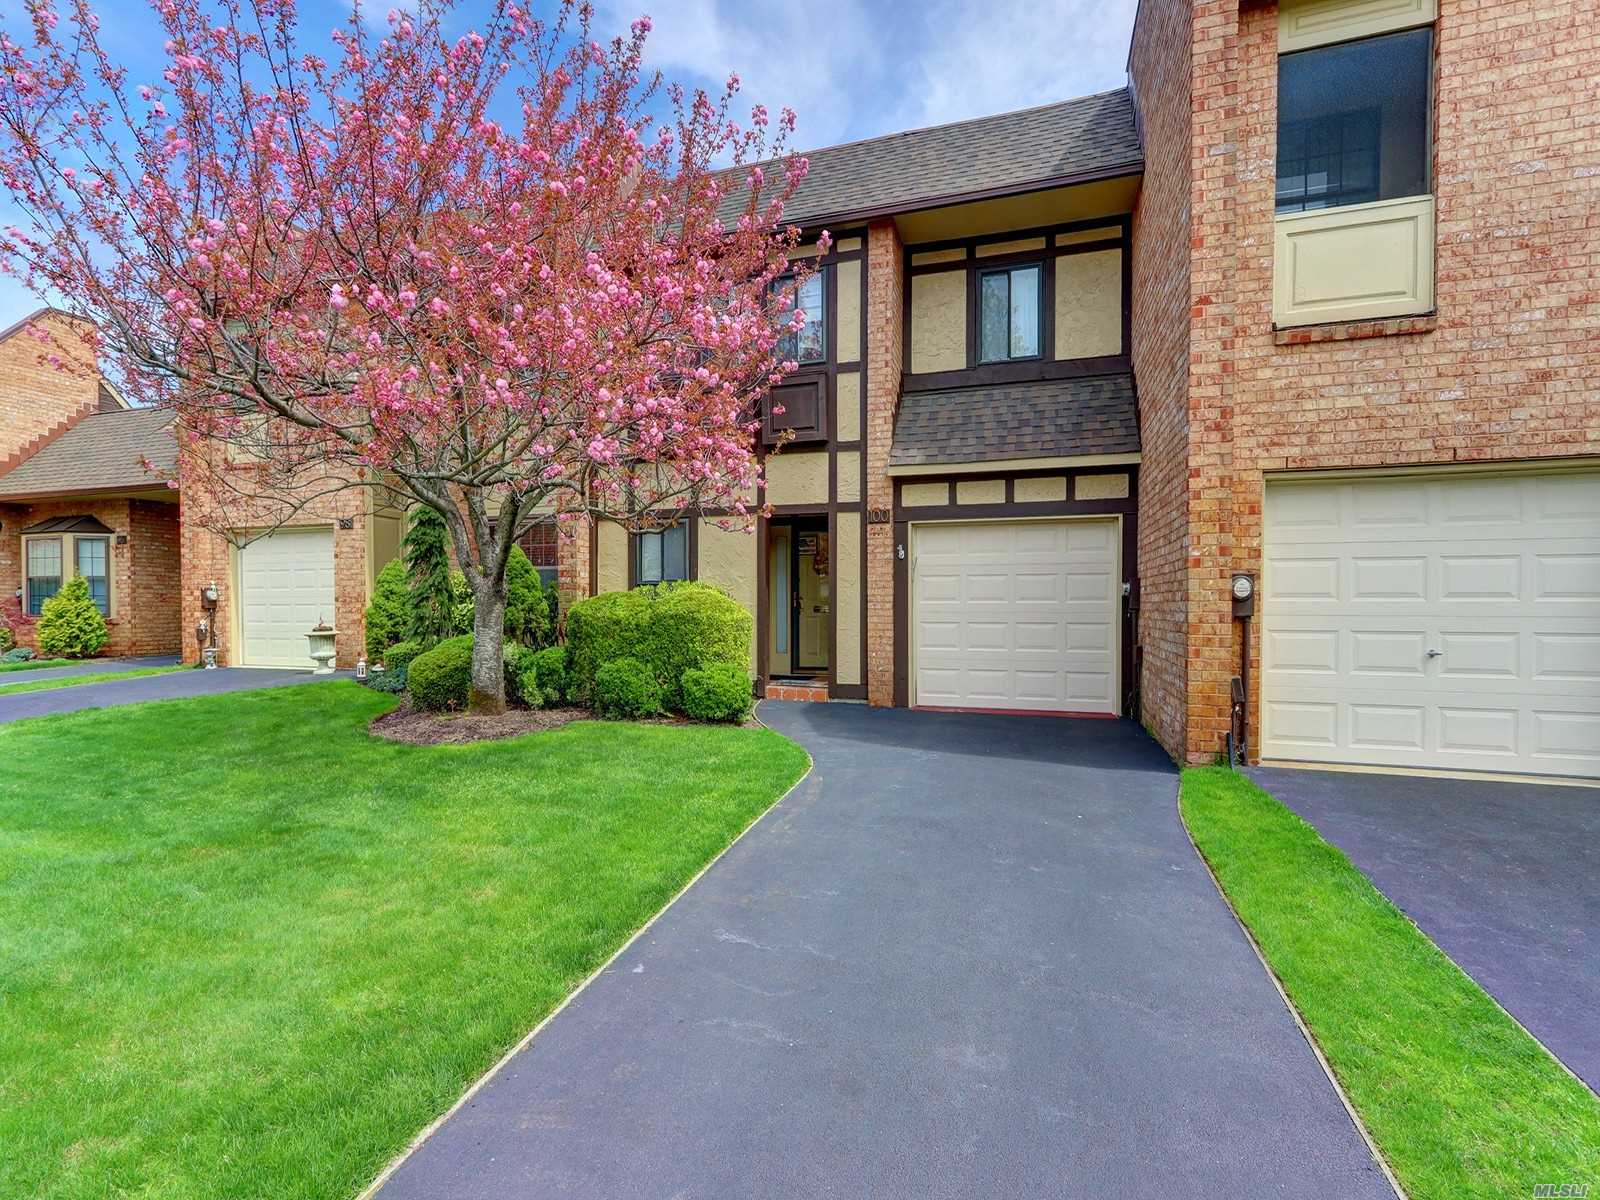 mint condition dover 3 br 2.5 baths cac garage, updated kitchen and baths master ensuite pool tennis clubhouse just listed if youre looking for a great lifestyle this is it...opportunity knocks!!! country club living....